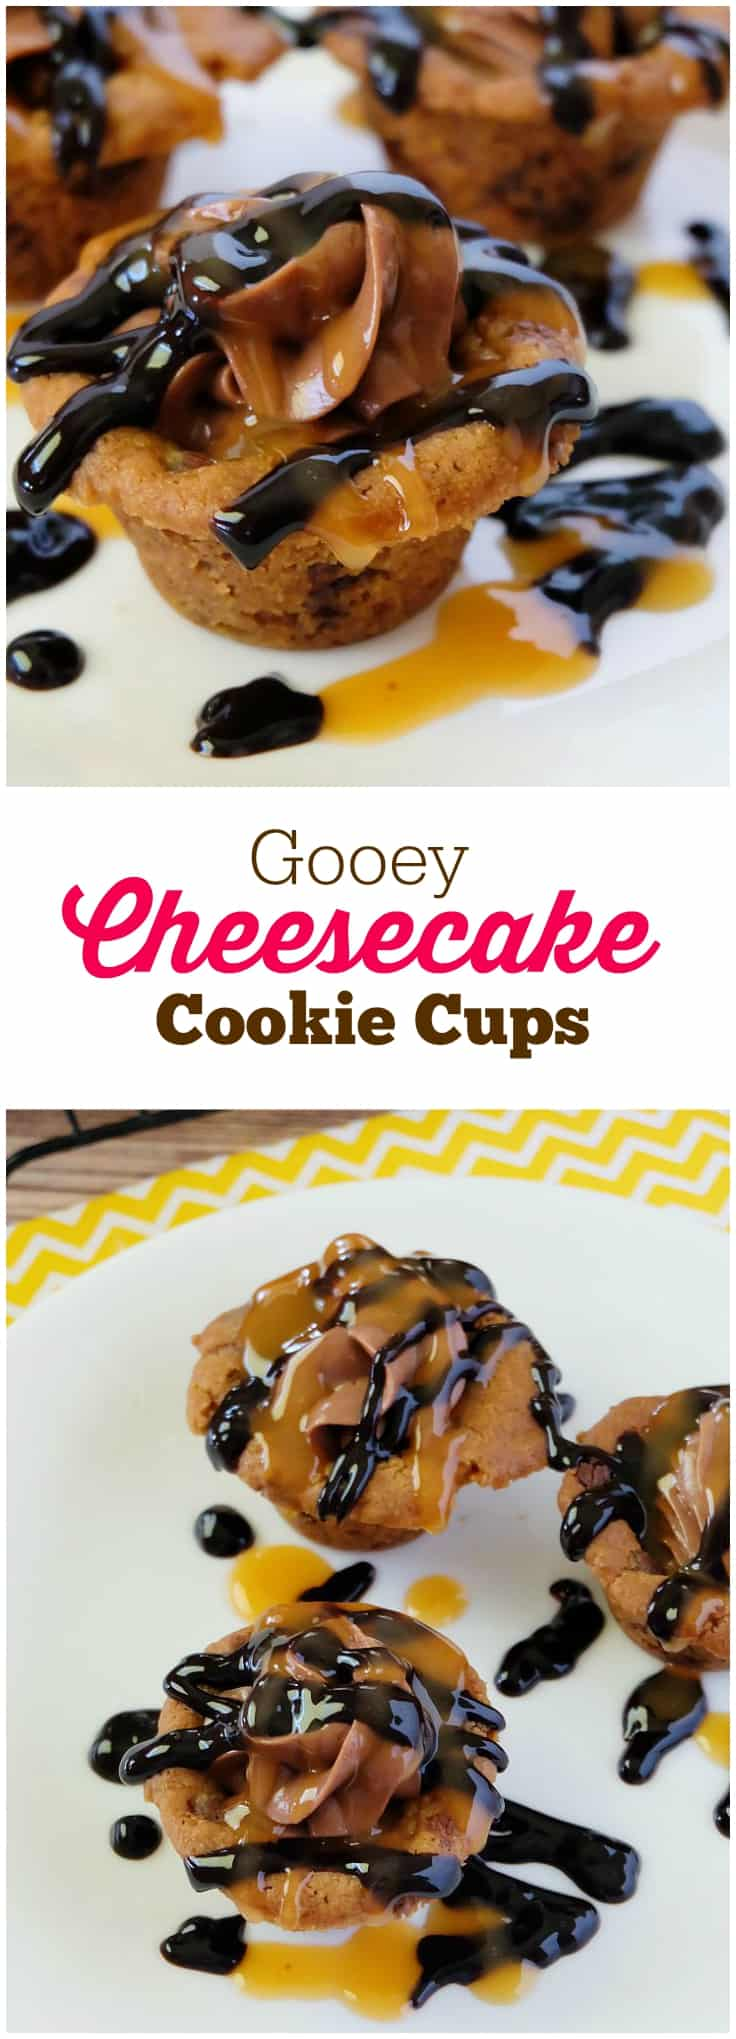 Gooey Cheesecake Cookie Cups - Indulge in these bite sized desserts filled with rich creamy Nutella filling and topped with caramel and chocolate.